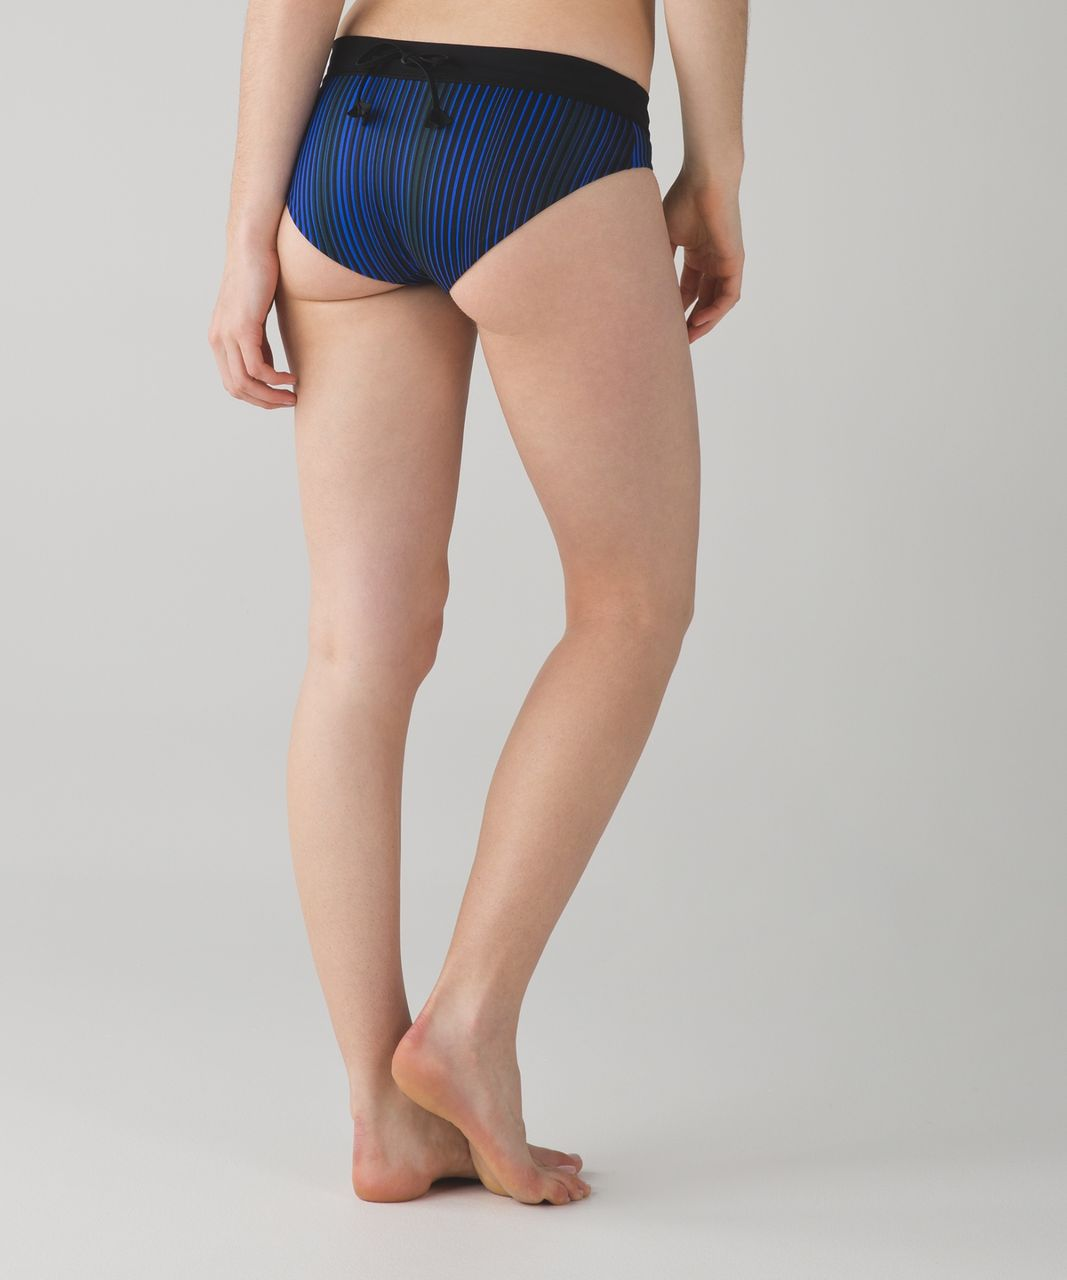 Lululemon Tidal Flow Full Bottom - Twisted Dune Harbor Blue Black / Black / Harbor Blue